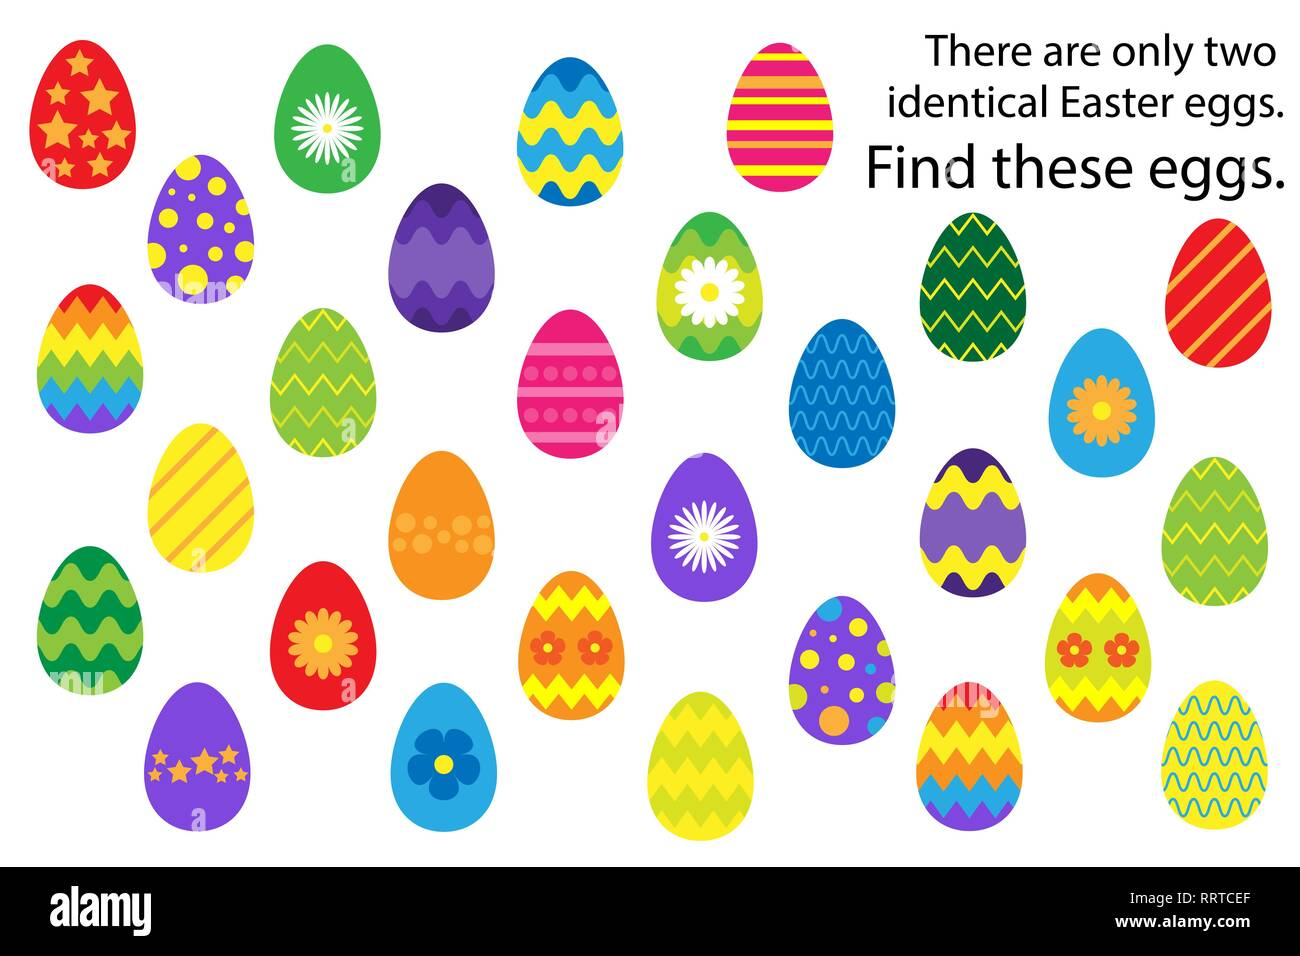 Find 2 Identical Decoration Easter Egg Fun Education